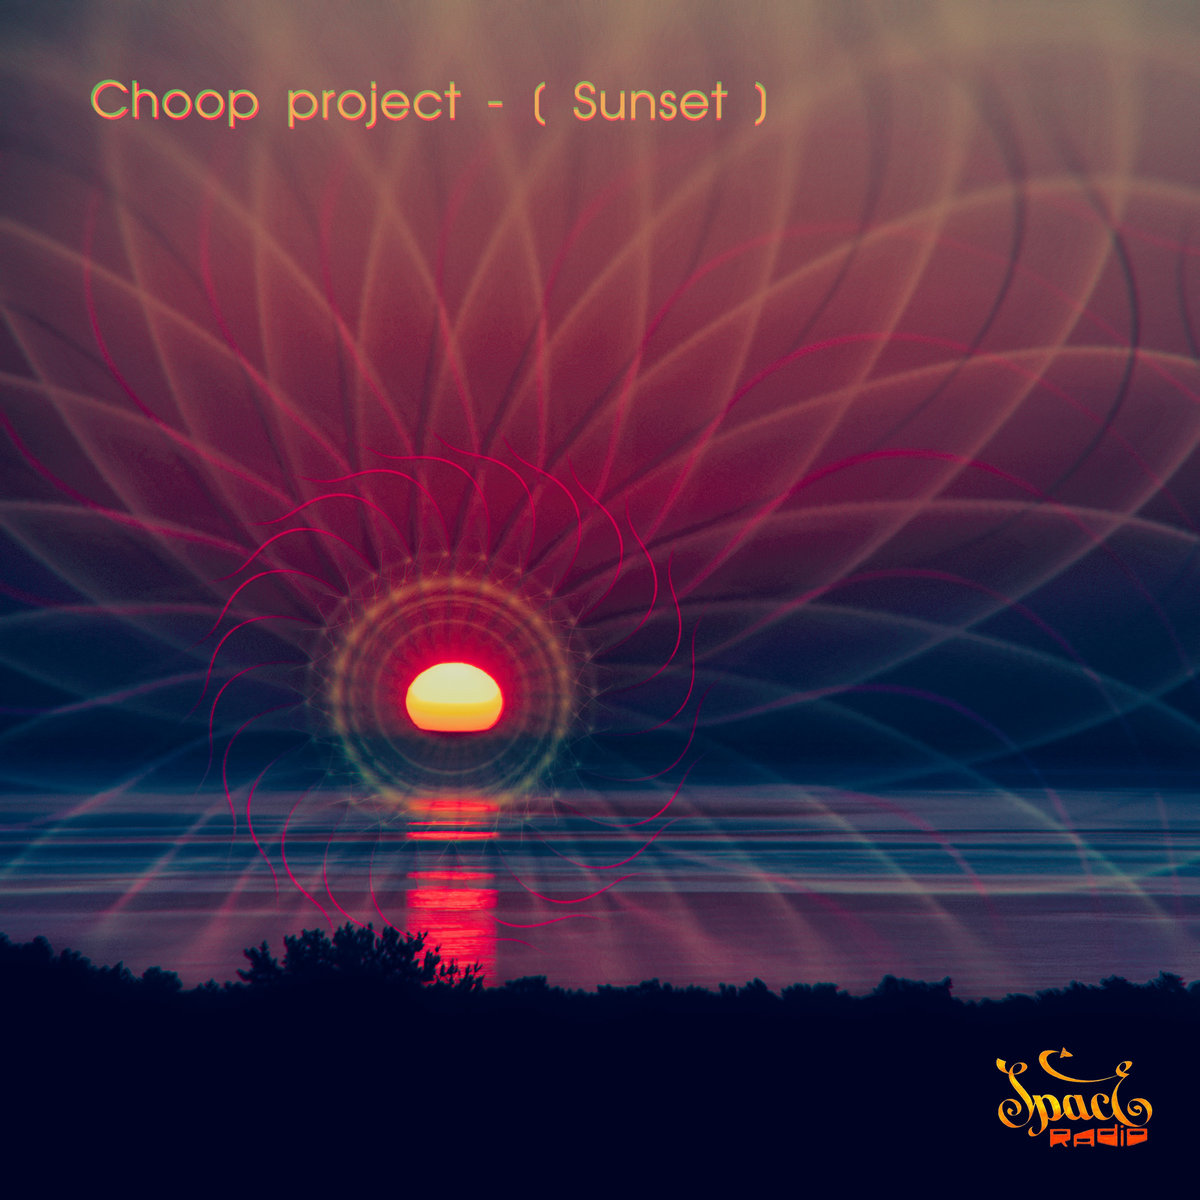 Choop Project - Sunset